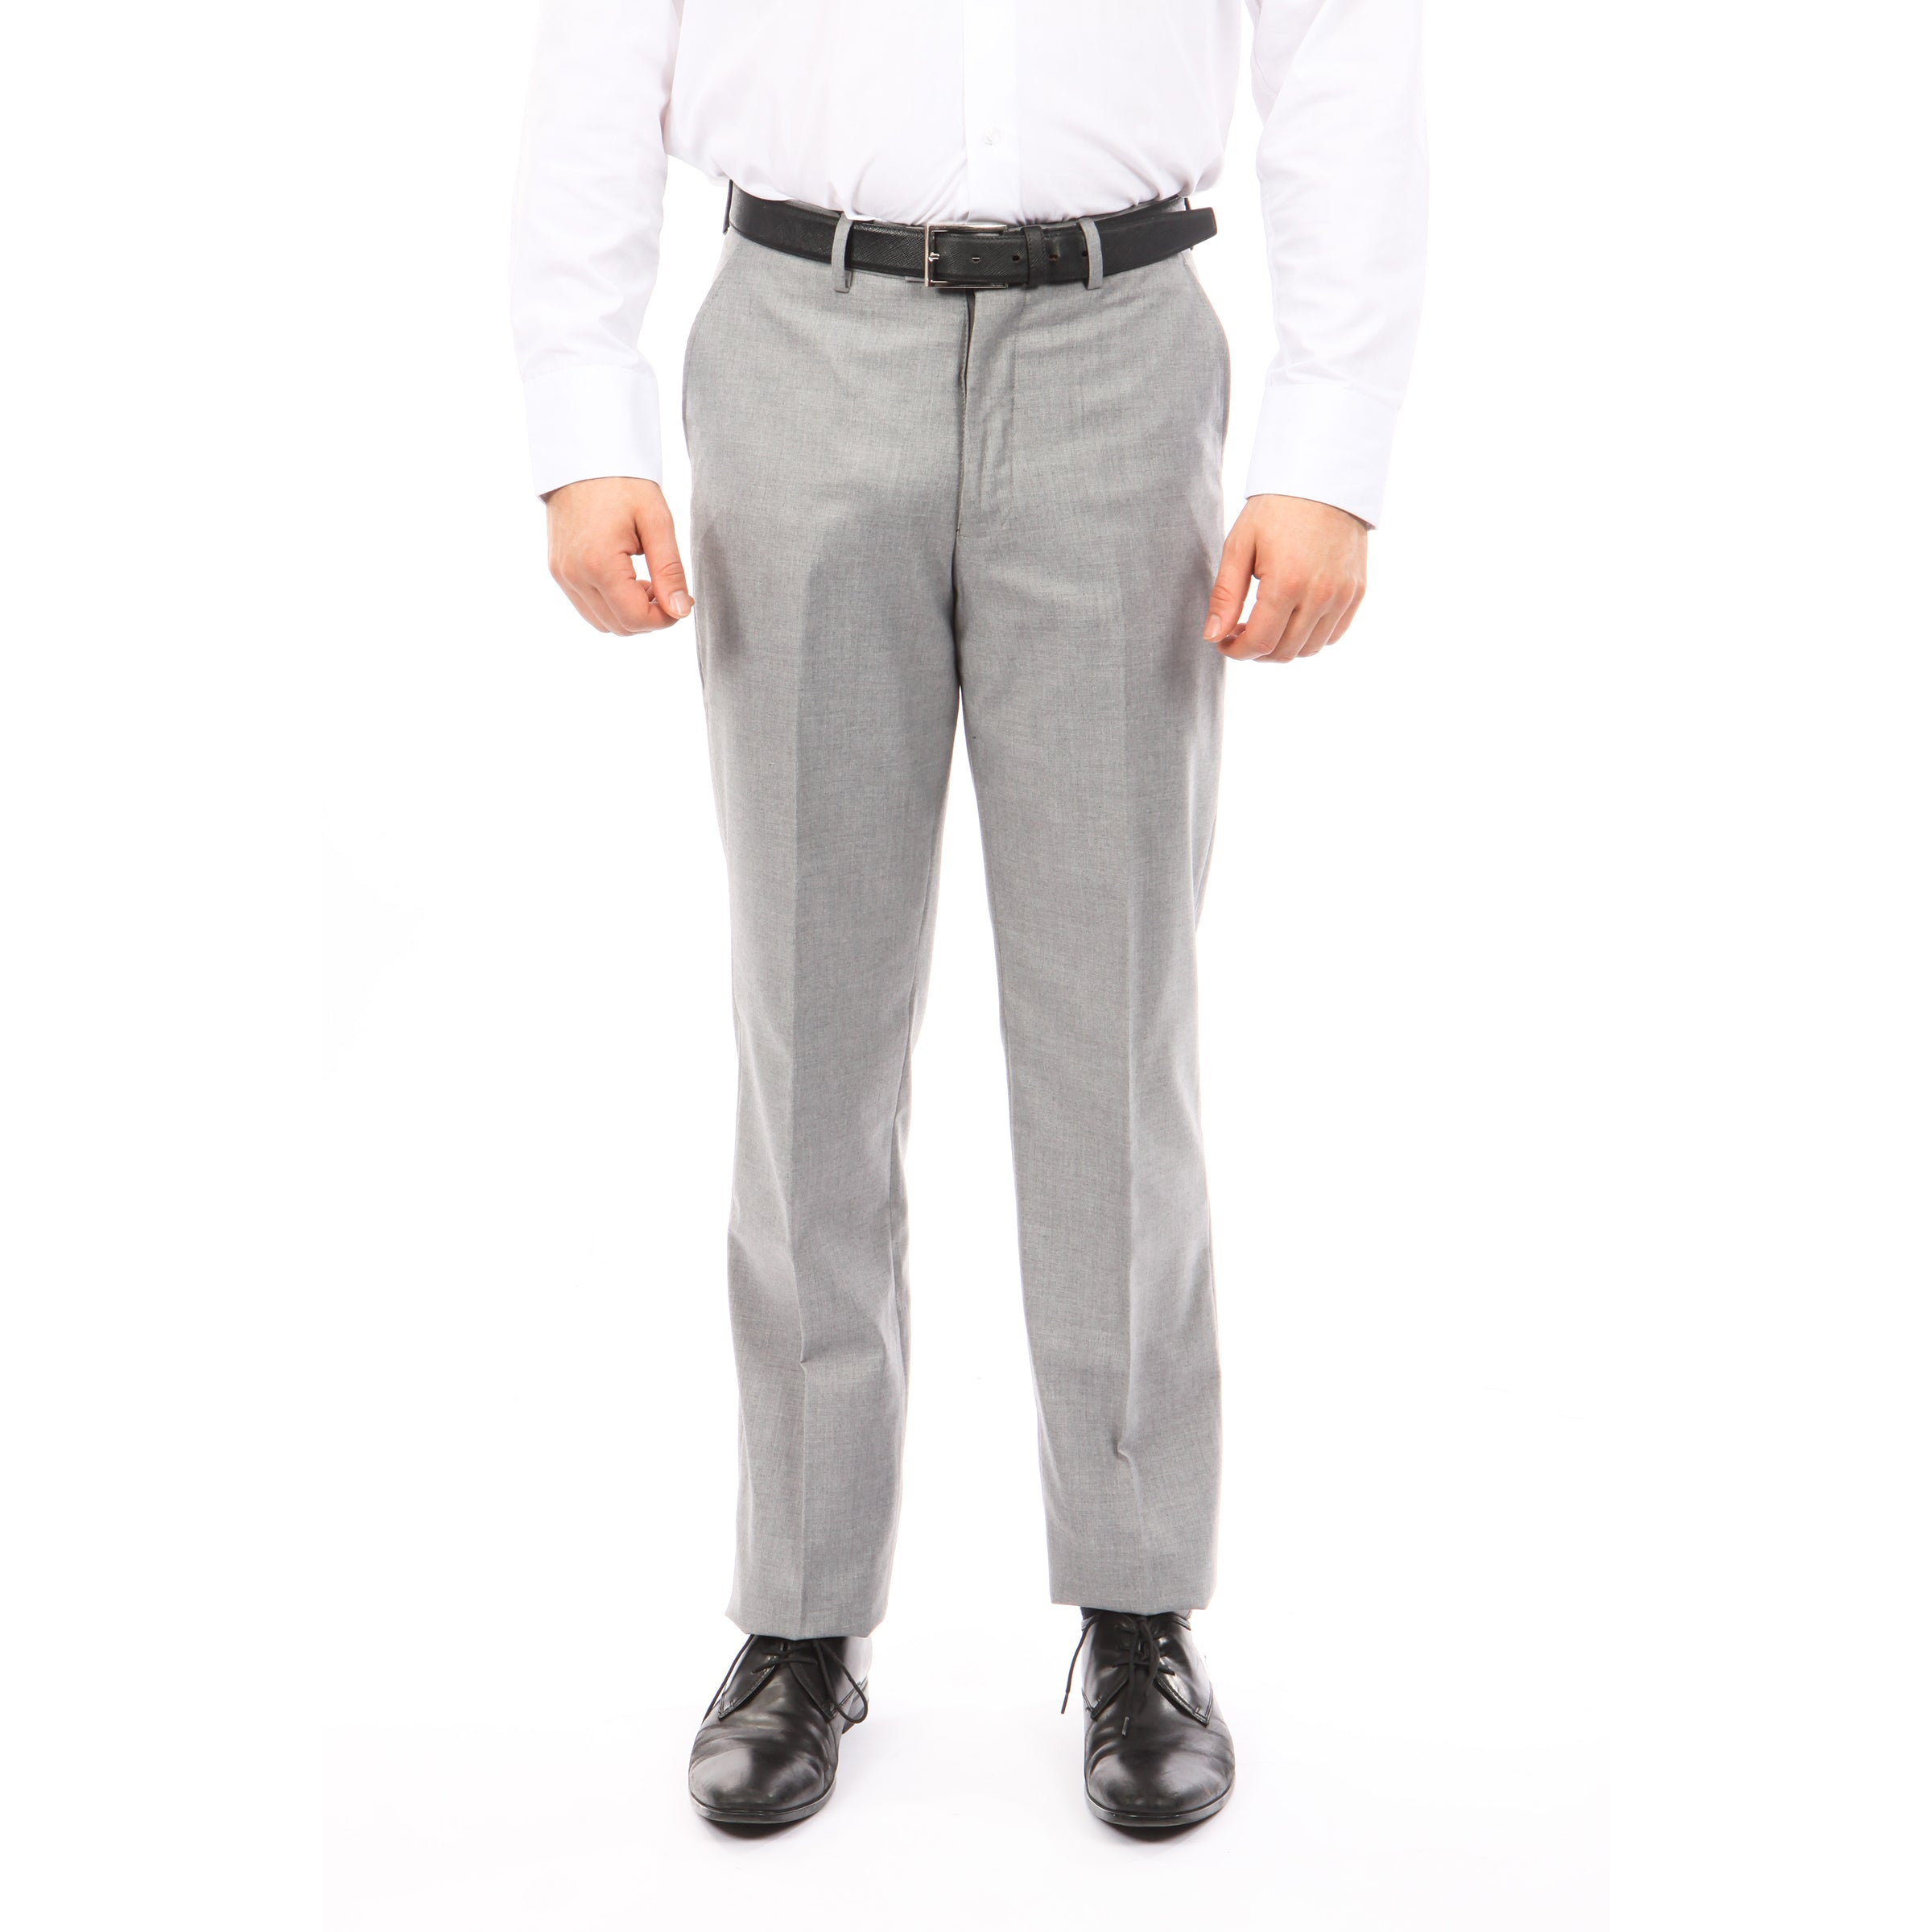 Tazio Lt Grey Slim Fit Stretch Dress Pants For Men